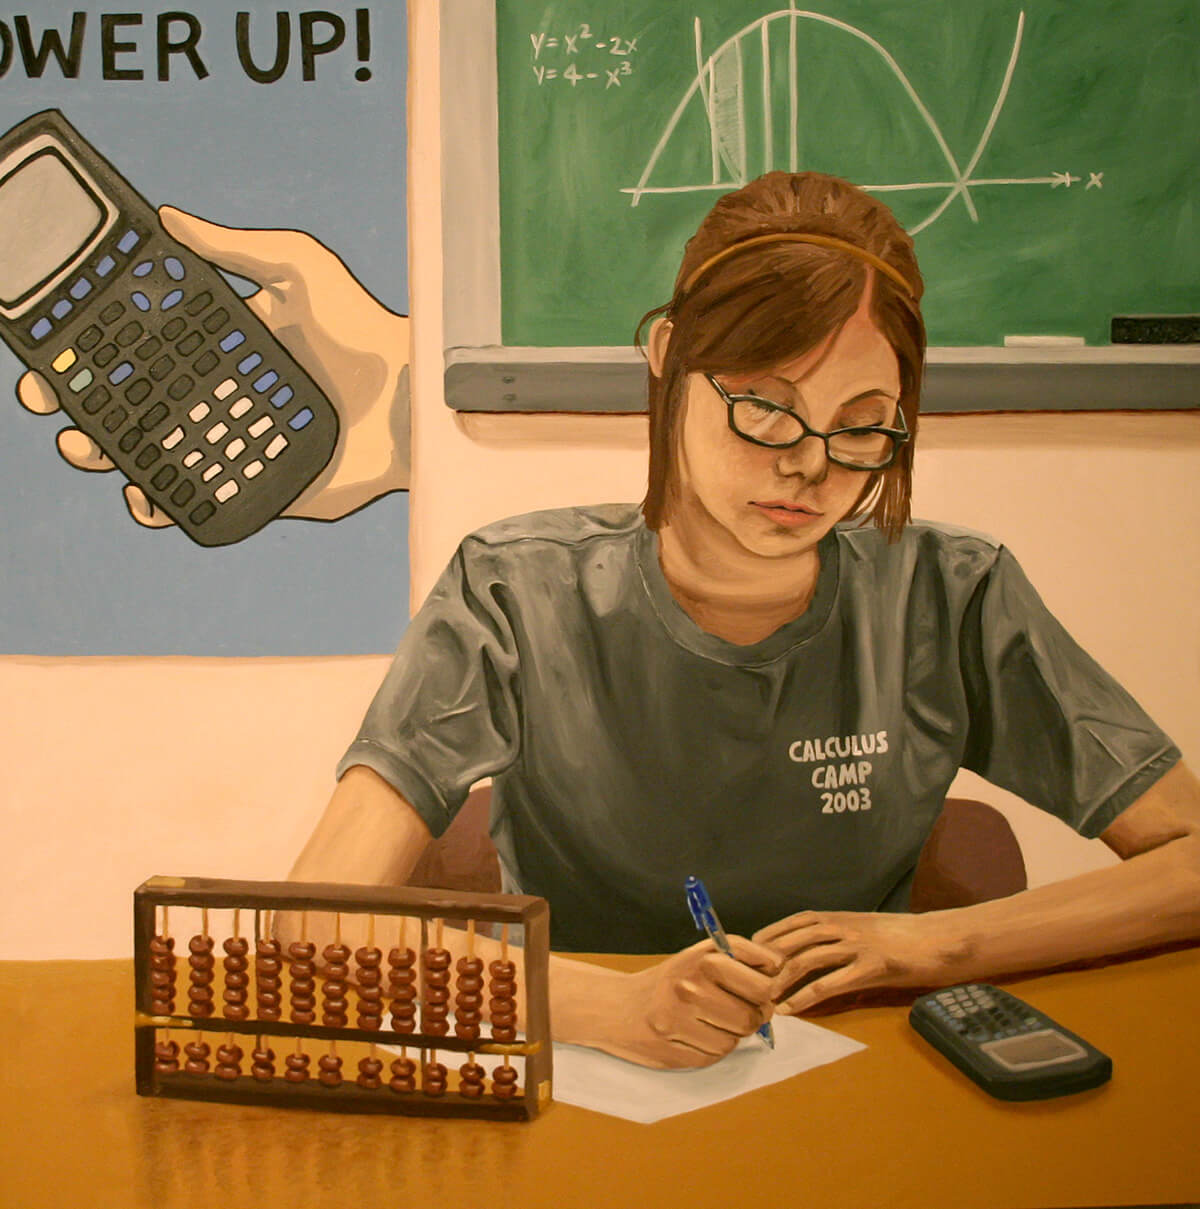 a painting of my friend Tiffany wearing a Calculus Camp shirt and doing some math homework with an abacus